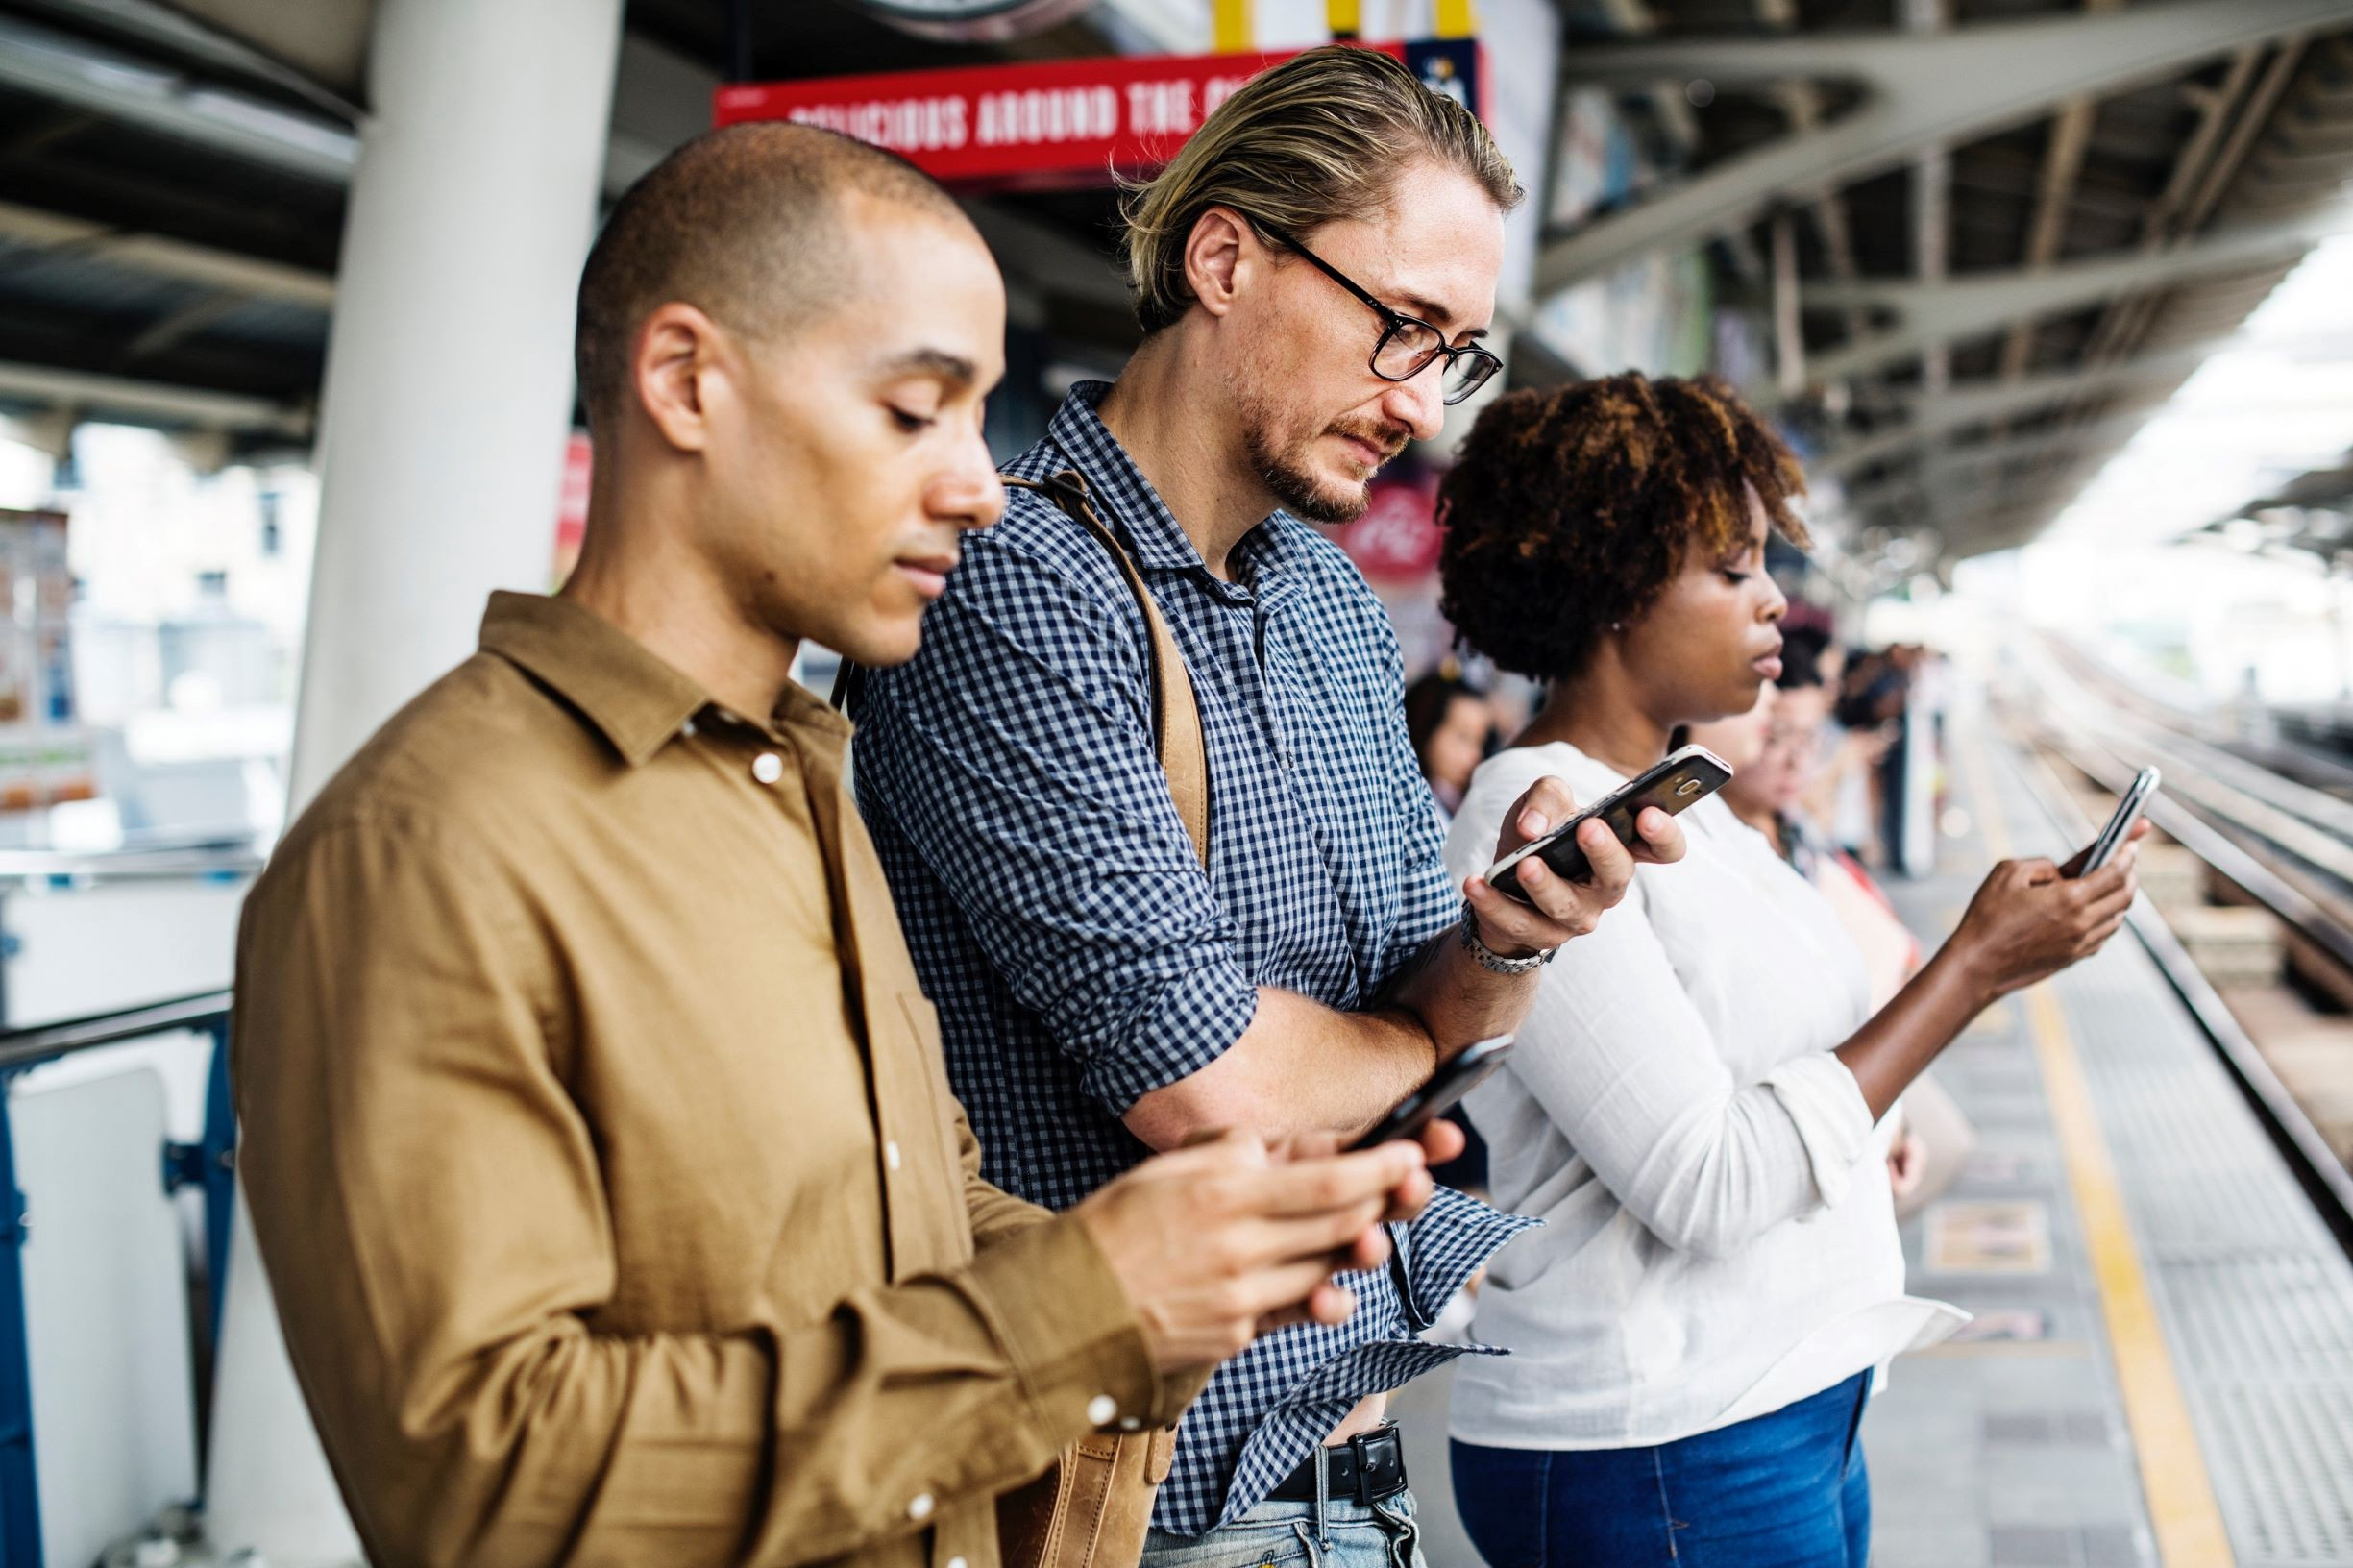 60% Of College Students Admit To Smartphone Addiction